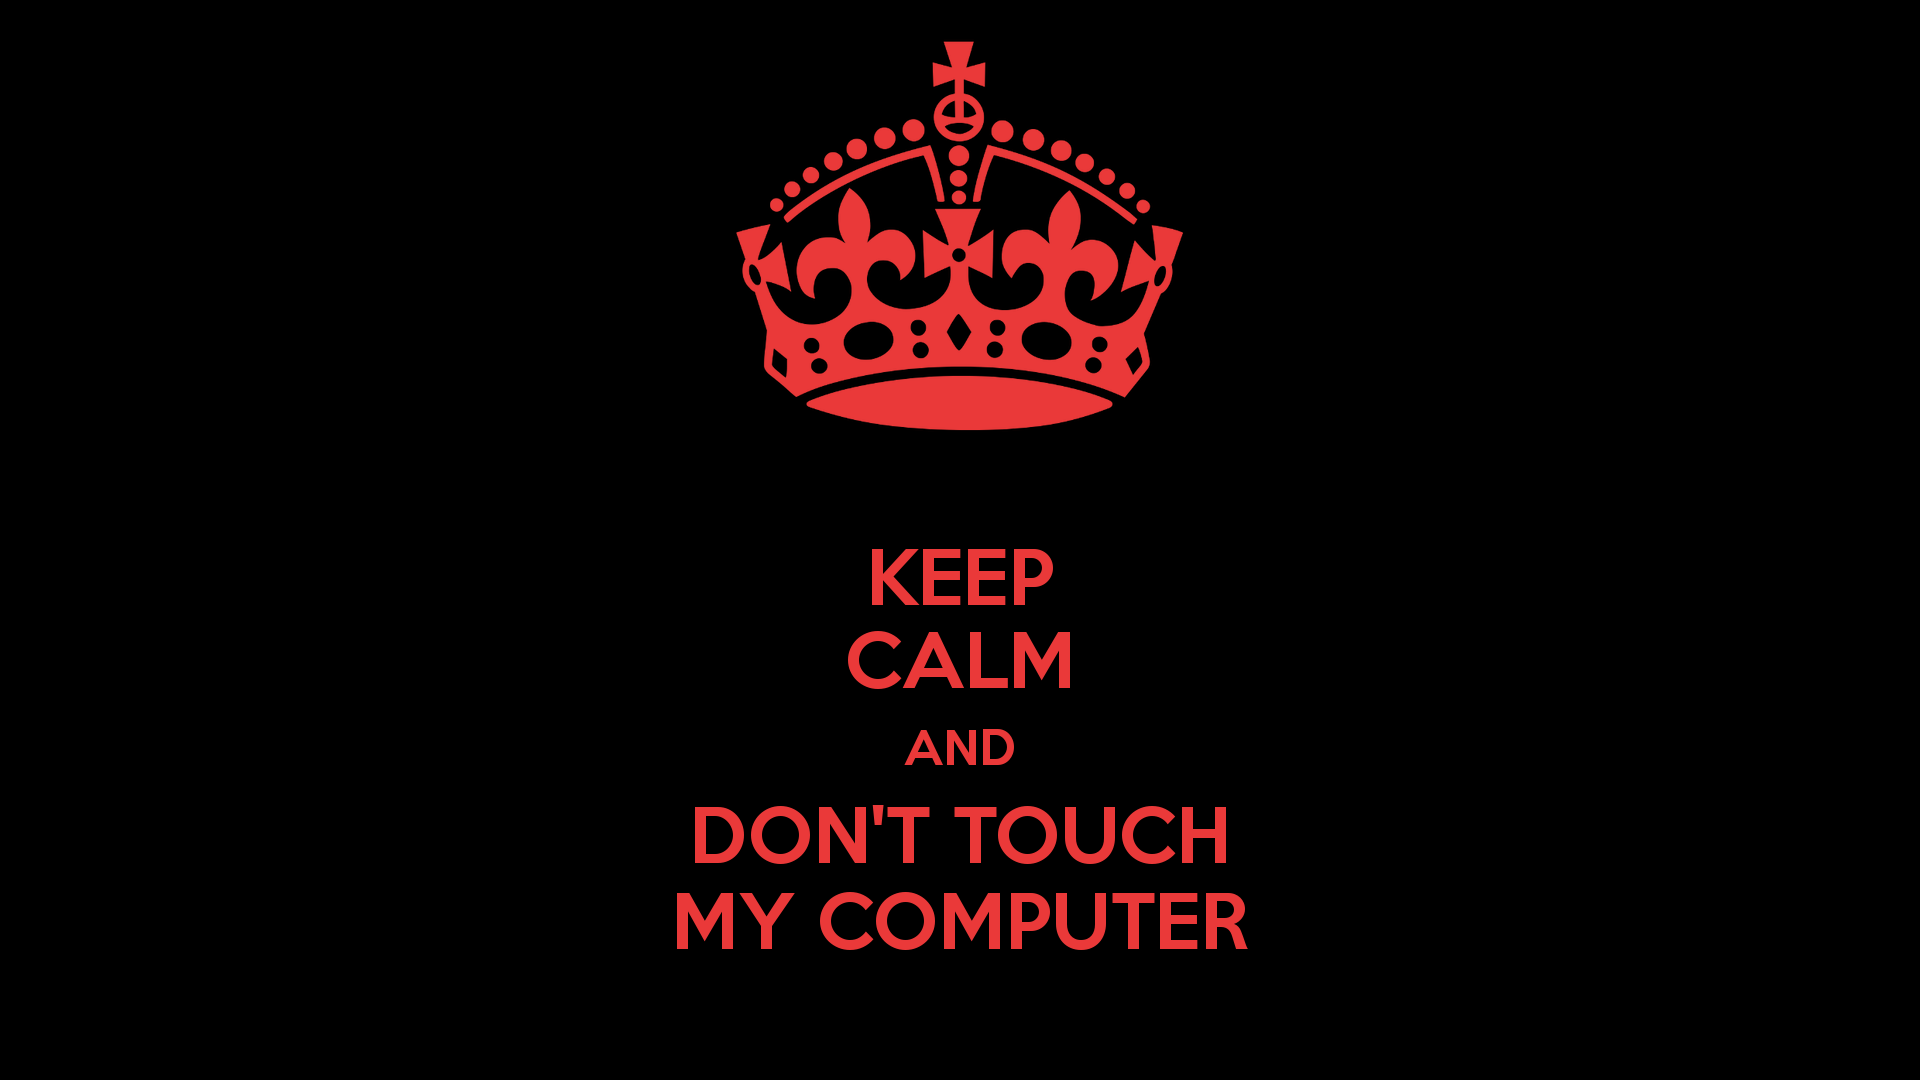 47 Dont Touch My Computer Wallpaper On Wallpapersafari